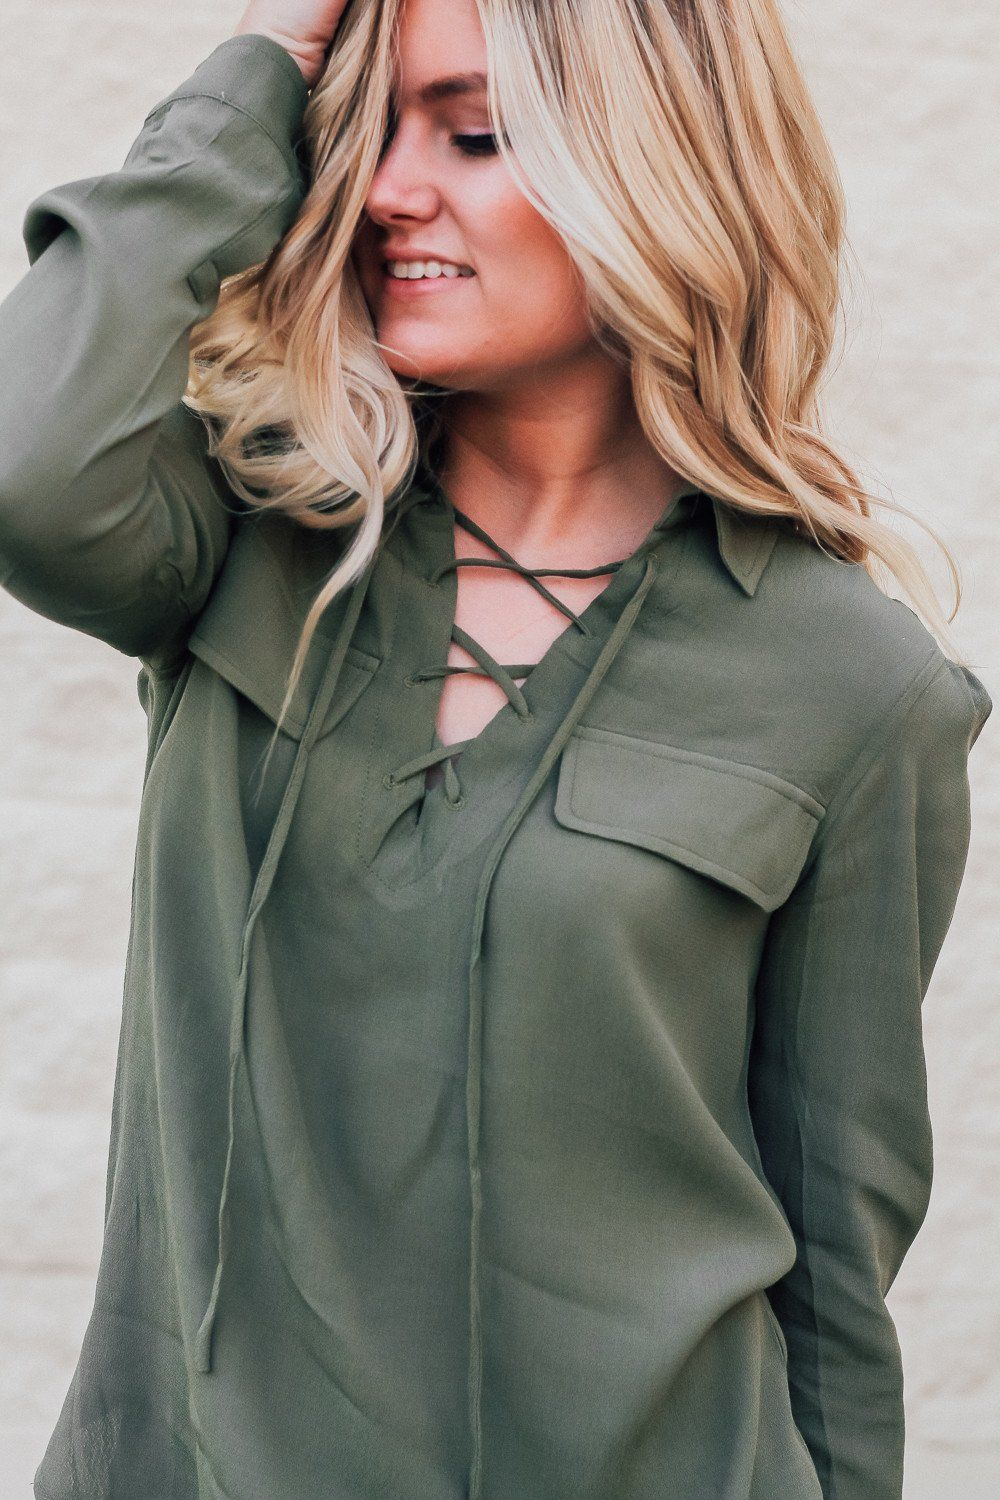 OLIVE LACE UP TOP || WWW.BHNCLOTHING.COM || @BEHERENOWCLOTHING || Lace up top, tie up top, green, fall outfit, fall style, fall clothing, fall top, utah, modest, lace up shirt.